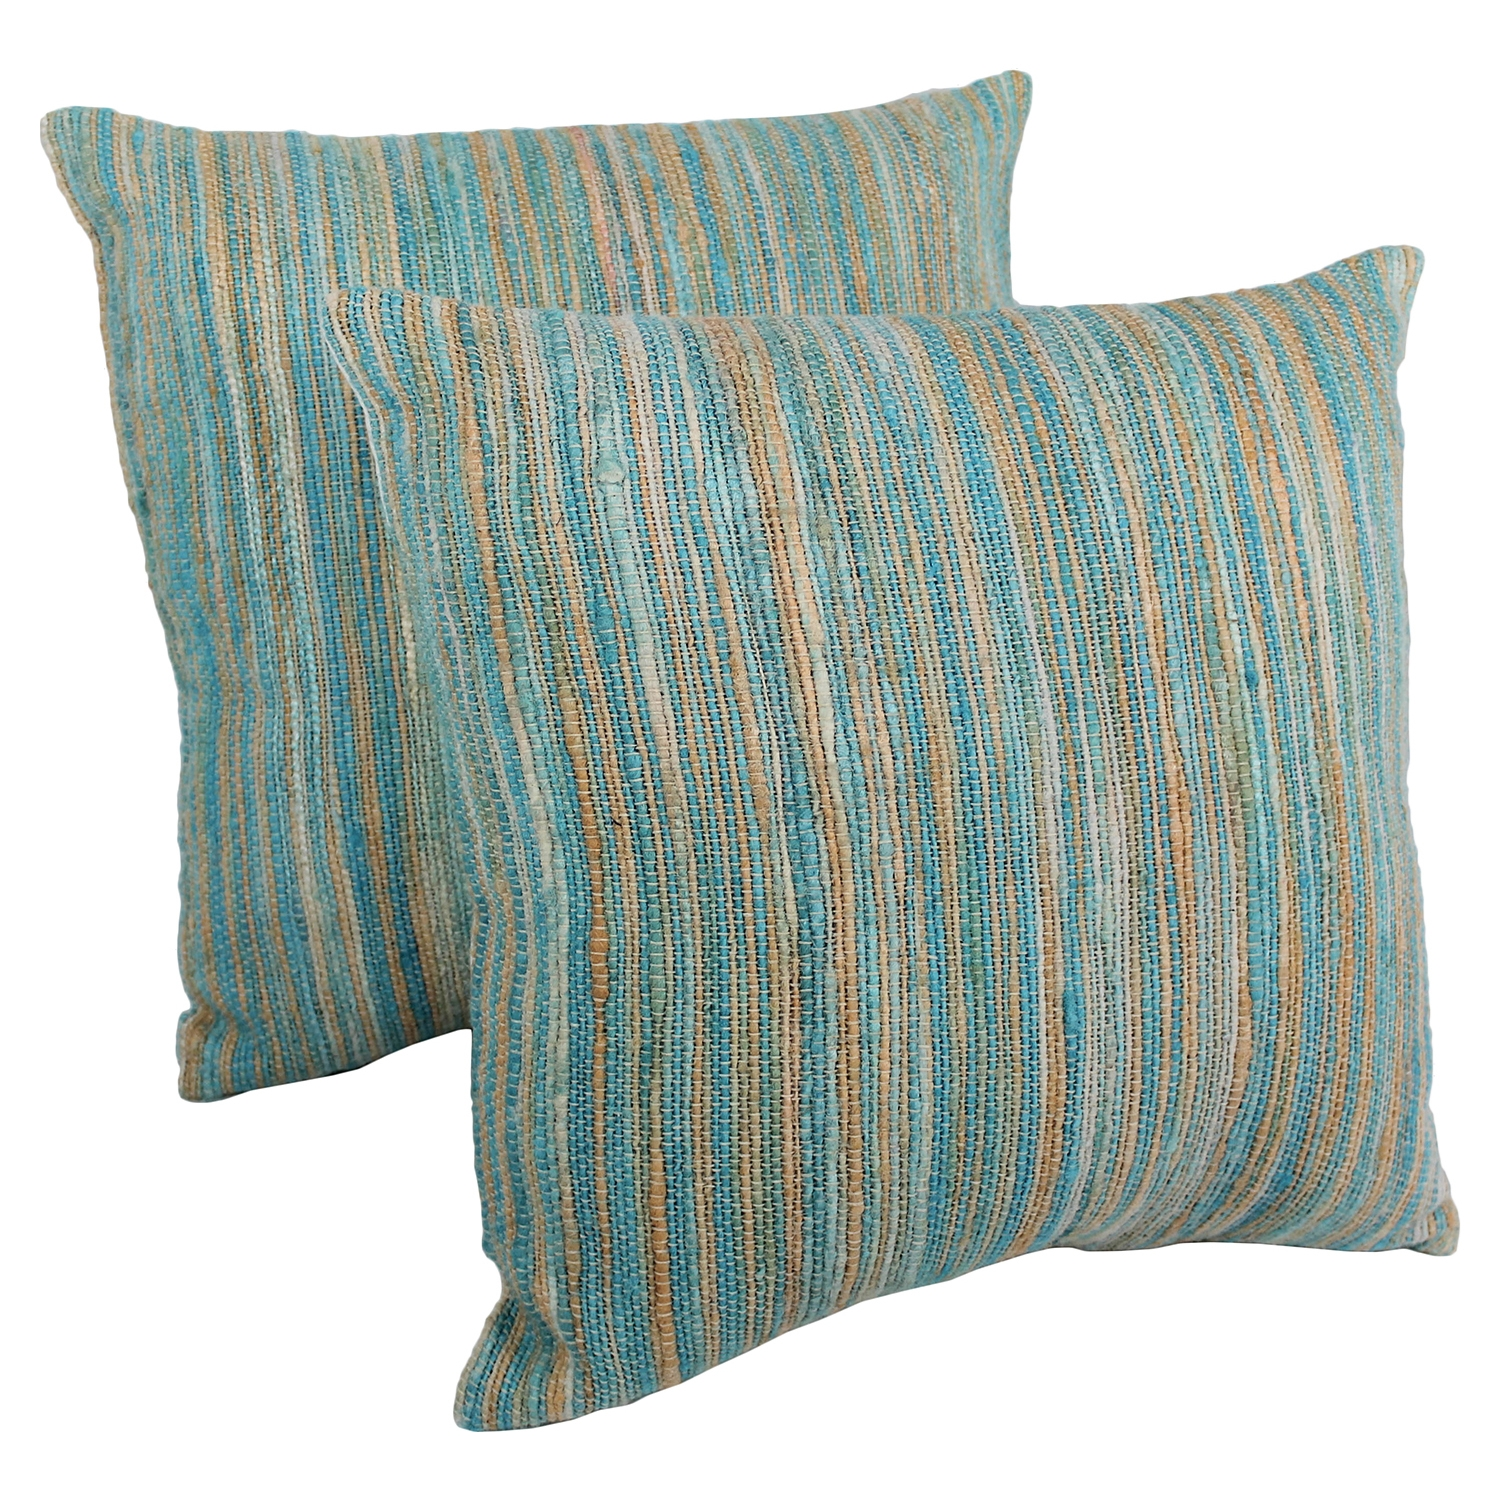 "20"" Throw Pillows - Aqua Blue and Beige Blue Palette Striped (Set of 2) - BLZ-IE-20-YRN-S2-AB-BE"